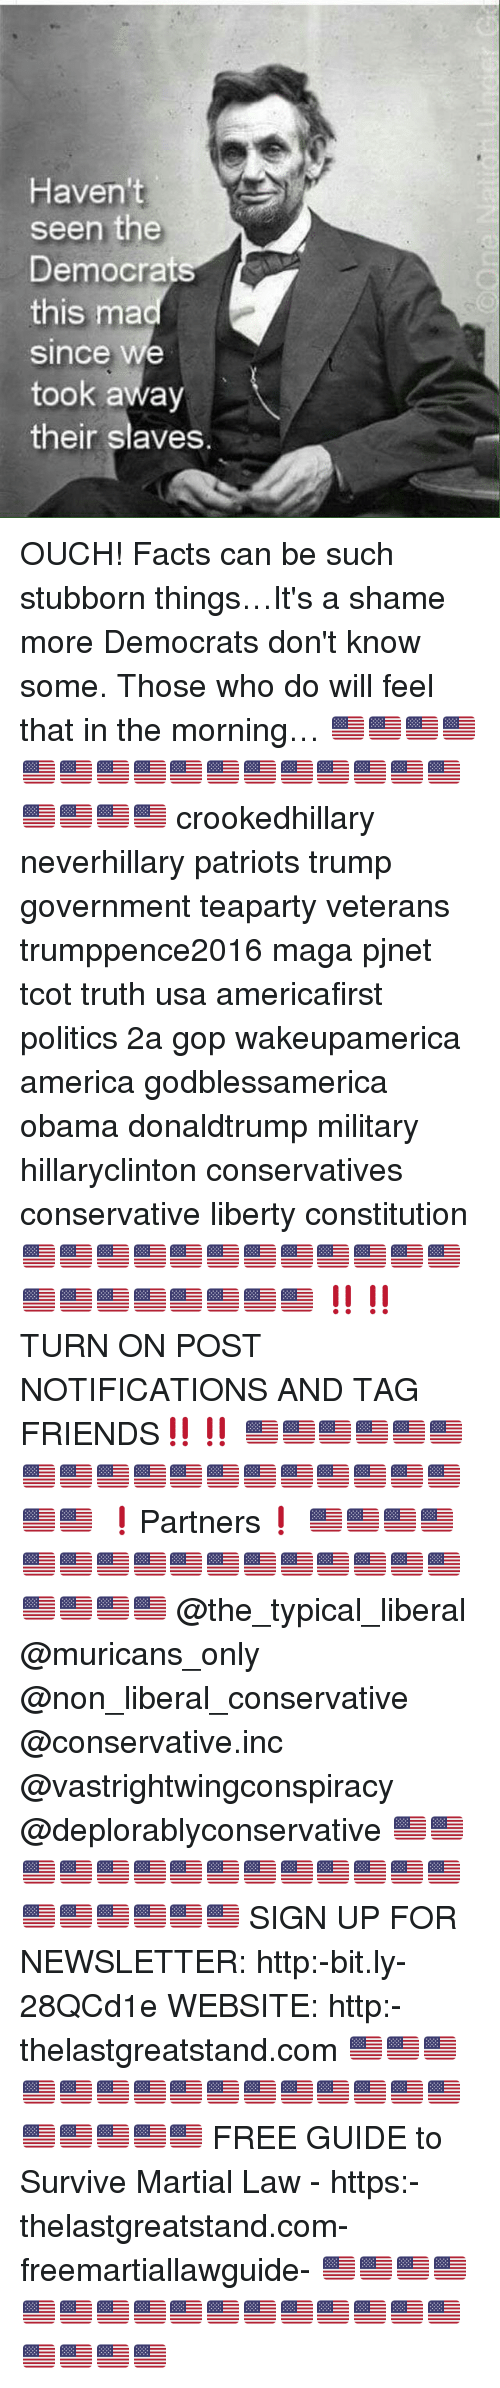 martial law: Haven't  seen the  Democrat  this ma  Since we  took away  their slaves OUCH! Facts can be such stubborn things…It's a shame more Democrats don't know some. Those who do will feel that in the morning… 🇺🇸🇺🇸🇺🇸🇺🇸🇺🇸🇺🇸🇺🇸🇺🇸🇺🇸🇺🇸🇺🇸🇺🇸🇺🇸🇺🇸🇺🇸🇺🇸🇺🇸🇺🇸🇺🇸🇺🇸 crookedhillary neverhillary patriots trump government teaparty veterans trumppence2016 maga pjnet tcot truth usa americafirst politics 2a gop wakeupamerica america godblessamerica obama donaldtrump military hillaryclinton conservatives conservative liberty constitution 🇺🇸🇺🇸🇺🇸🇺🇸🇺🇸🇺🇸🇺🇸🇺🇸🇺🇸🇺🇸🇺🇸🇺🇸🇺🇸🇺🇸🇺🇸🇺🇸🇺🇸🇺🇸🇺🇸🇺🇸 ‼️‼️TURN ON POST NOTIFICATIONS AND TAG FRIENDS‼️‼️ 🇺🇸🇺🇸🇺🇸🇺🇸🇺🇸🇺🇸🇺🇸🇺🇸🇺🇸🇺🇸🇺🇸🇺🇸🇺🇸🇺🇸🇺🇸🇺🇸🇺🇸🇺🇸🇺🇸🇺🇸 ❗️Partners❗️ 🇺🇸🇺🇸🇺🇸🇺🇸🇺🇸🇺🇸🇺🇸🇺🇸🇺🇸🇺🇸🇺🇸🇺🇸🇺🇸🇺🇸🇺🇸🇺🇸🇺🇸🇺🇸🇺🇸🇺🇸 @the_typical_liberal @muricans_only @non_liberal_conservative @conservative.inc @vastrightwingconspiracy @deplorablyconservative 🇺🇸🇺🇸🇺🇸🇺🇸🇺🇸🇺🇸🇺🇸🇺🇸🇺🇸🇺🇸🇺🇸🇺🇸🇺🇸🇺🇸🇺🇸🇺🇸🇺🇸🇺🇸🇺🇸🇺🇸 SIGN UP FOR NEWSLETTER: http:-bit.ly-28QCd1e WEBSITE: http:-thelastgreatstand.com 🇺🇸🇺🇸🇺🇸🇺🇸🇺🇸🇺🇸🇺🇸🇺🇸🇺🇸🇺🇸🇺🇸🇺🇸🇺🇸🇺🇸🇺🇸🇺🇸🇺🇸🇺🇸🇺🇸🇺🇸 FREE GUIDE to Survive Martial Law - https:-thelastgreatstand.com-freemartiallawguide- 🇺🇸🇺🇸🇺🇸🇺🇸🇺🇸🇺🇸🇺🇸🇺🇸🇺🇸🇺🇸🇺🇸🇺🇸🇺🇸🇺🇸🇺🇸🇺🇸🇺🇸🇺🇸🇺🇸🇺🇸